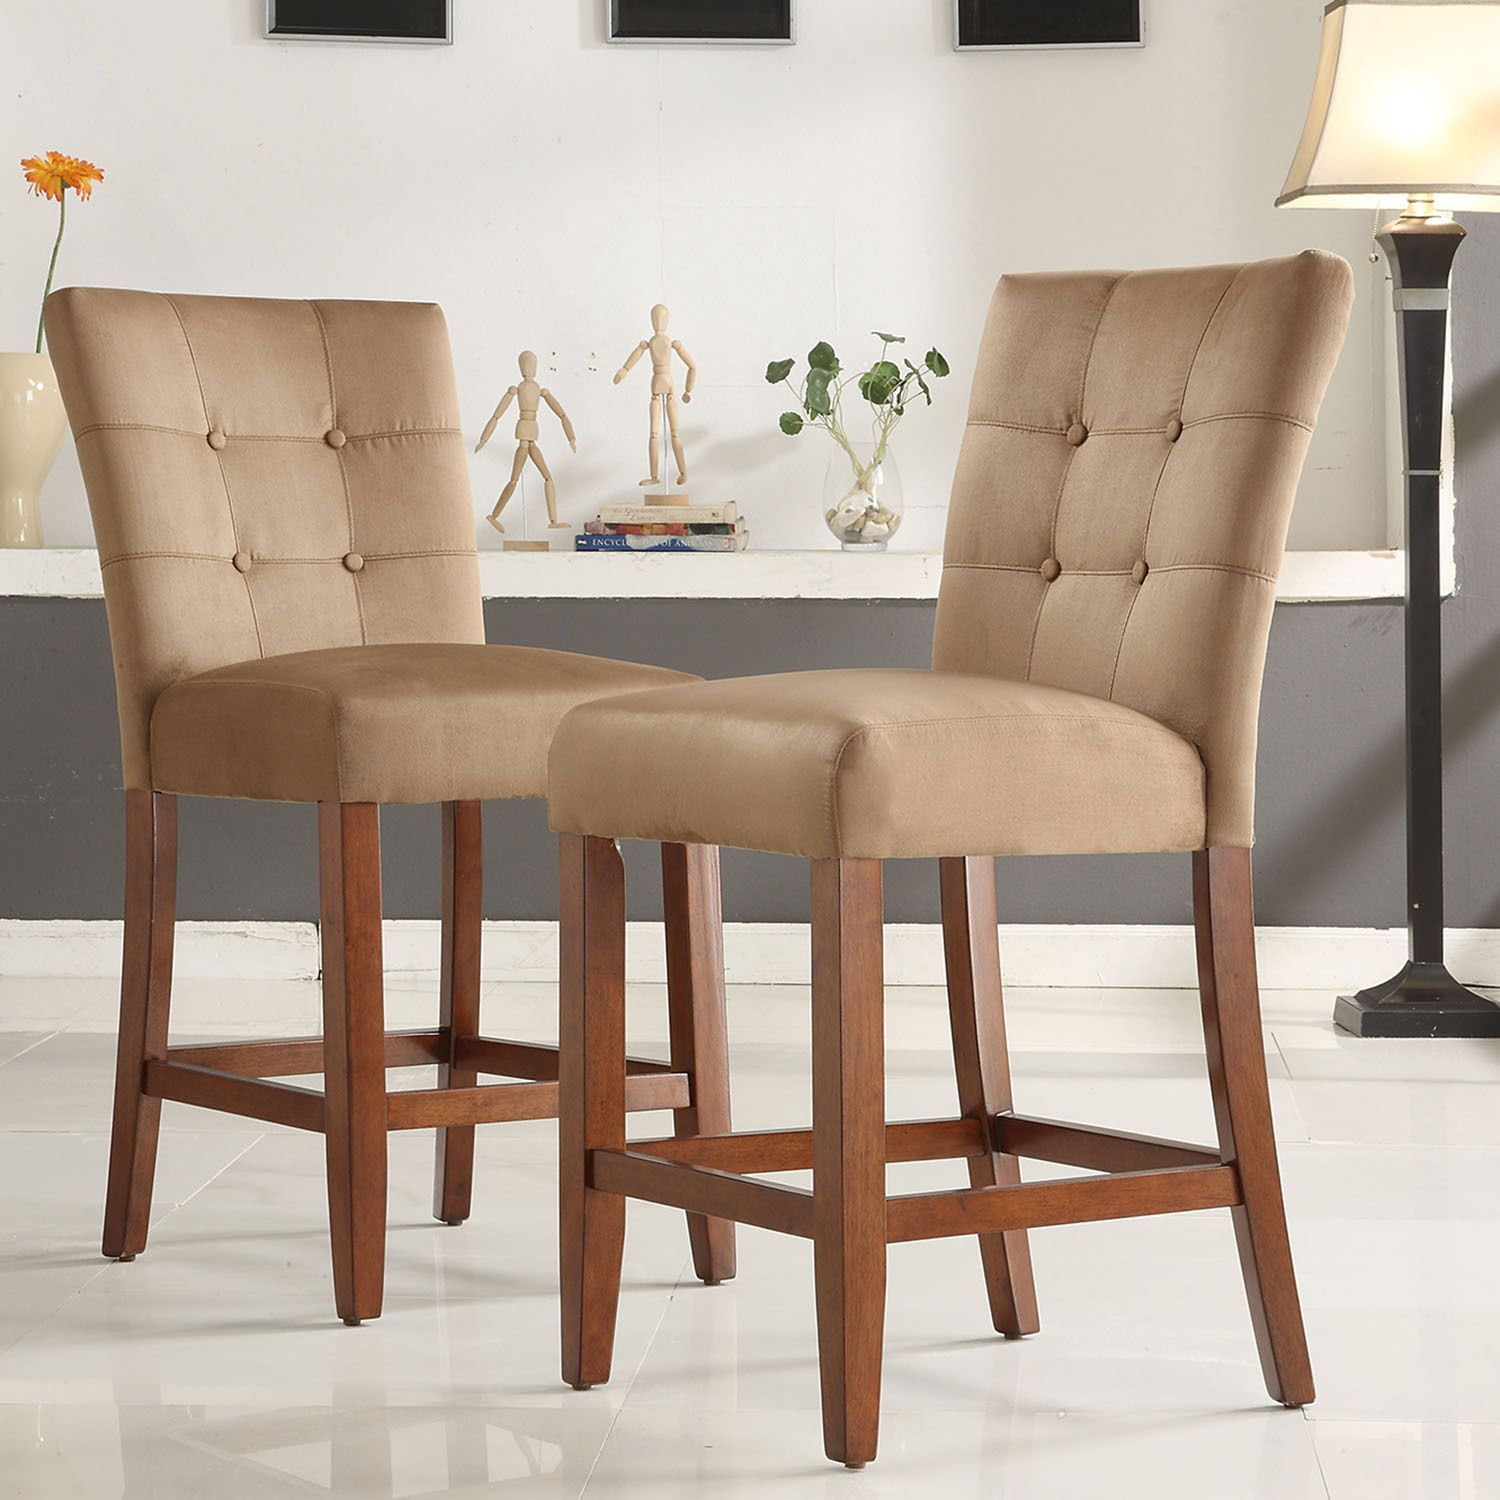 Button Tufted Peat Microfiber 24 Inch Chairs By Tribecca Home (Set Of 2)